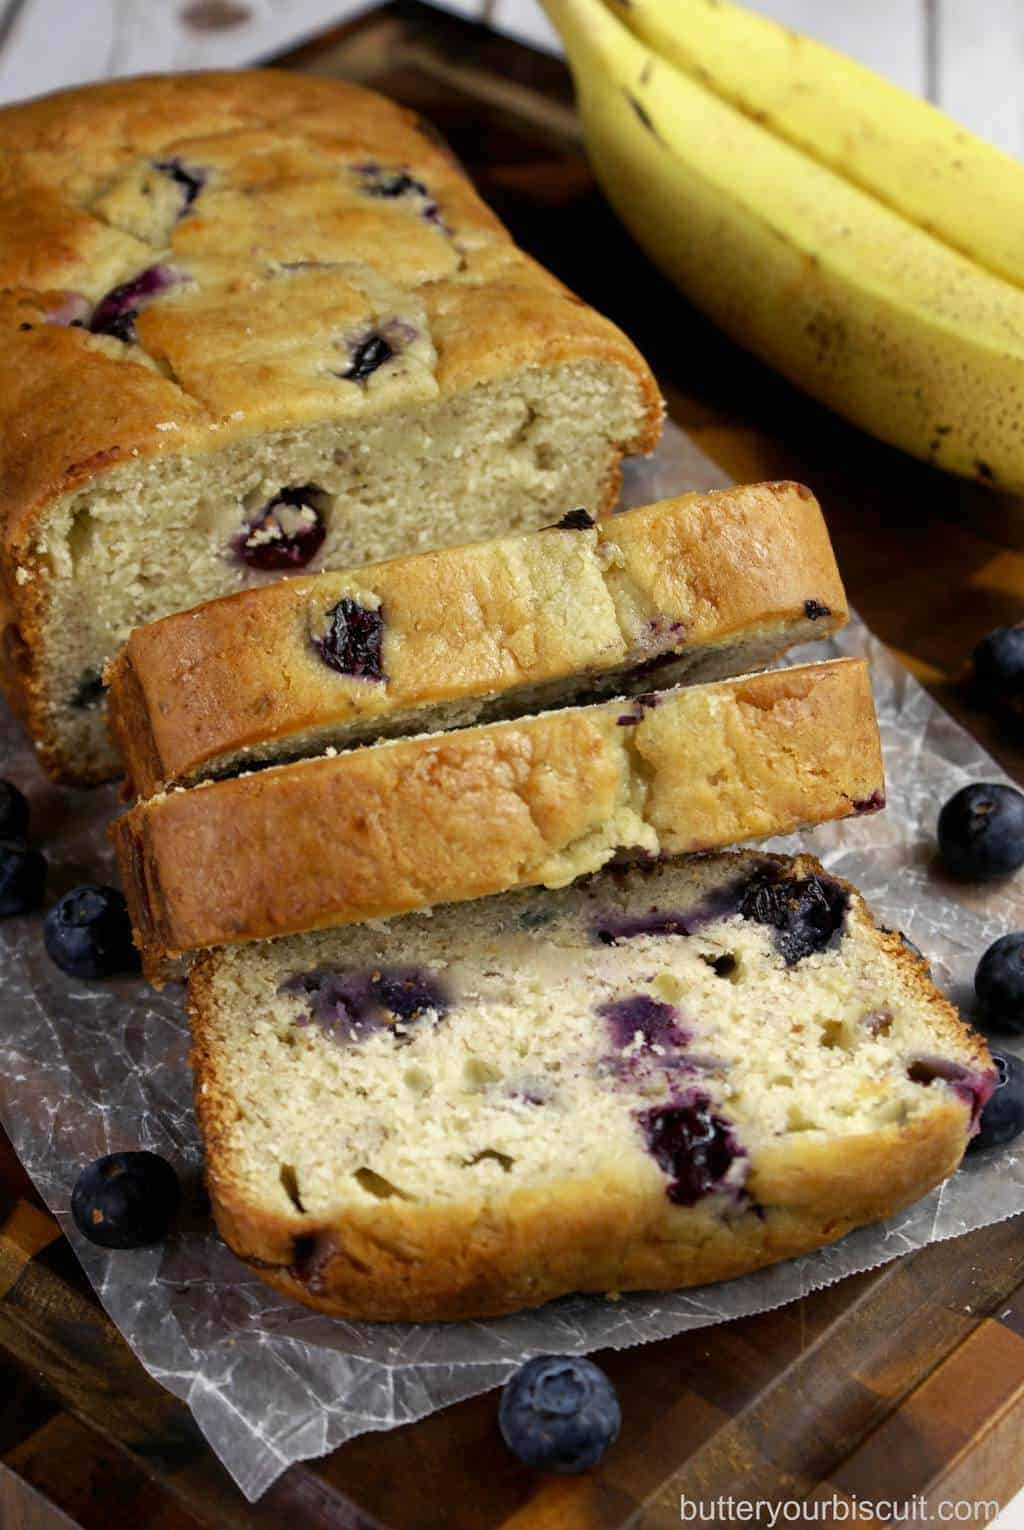 Banana-Blueberry Cream Cheese Bread - Butter Your Biscuit